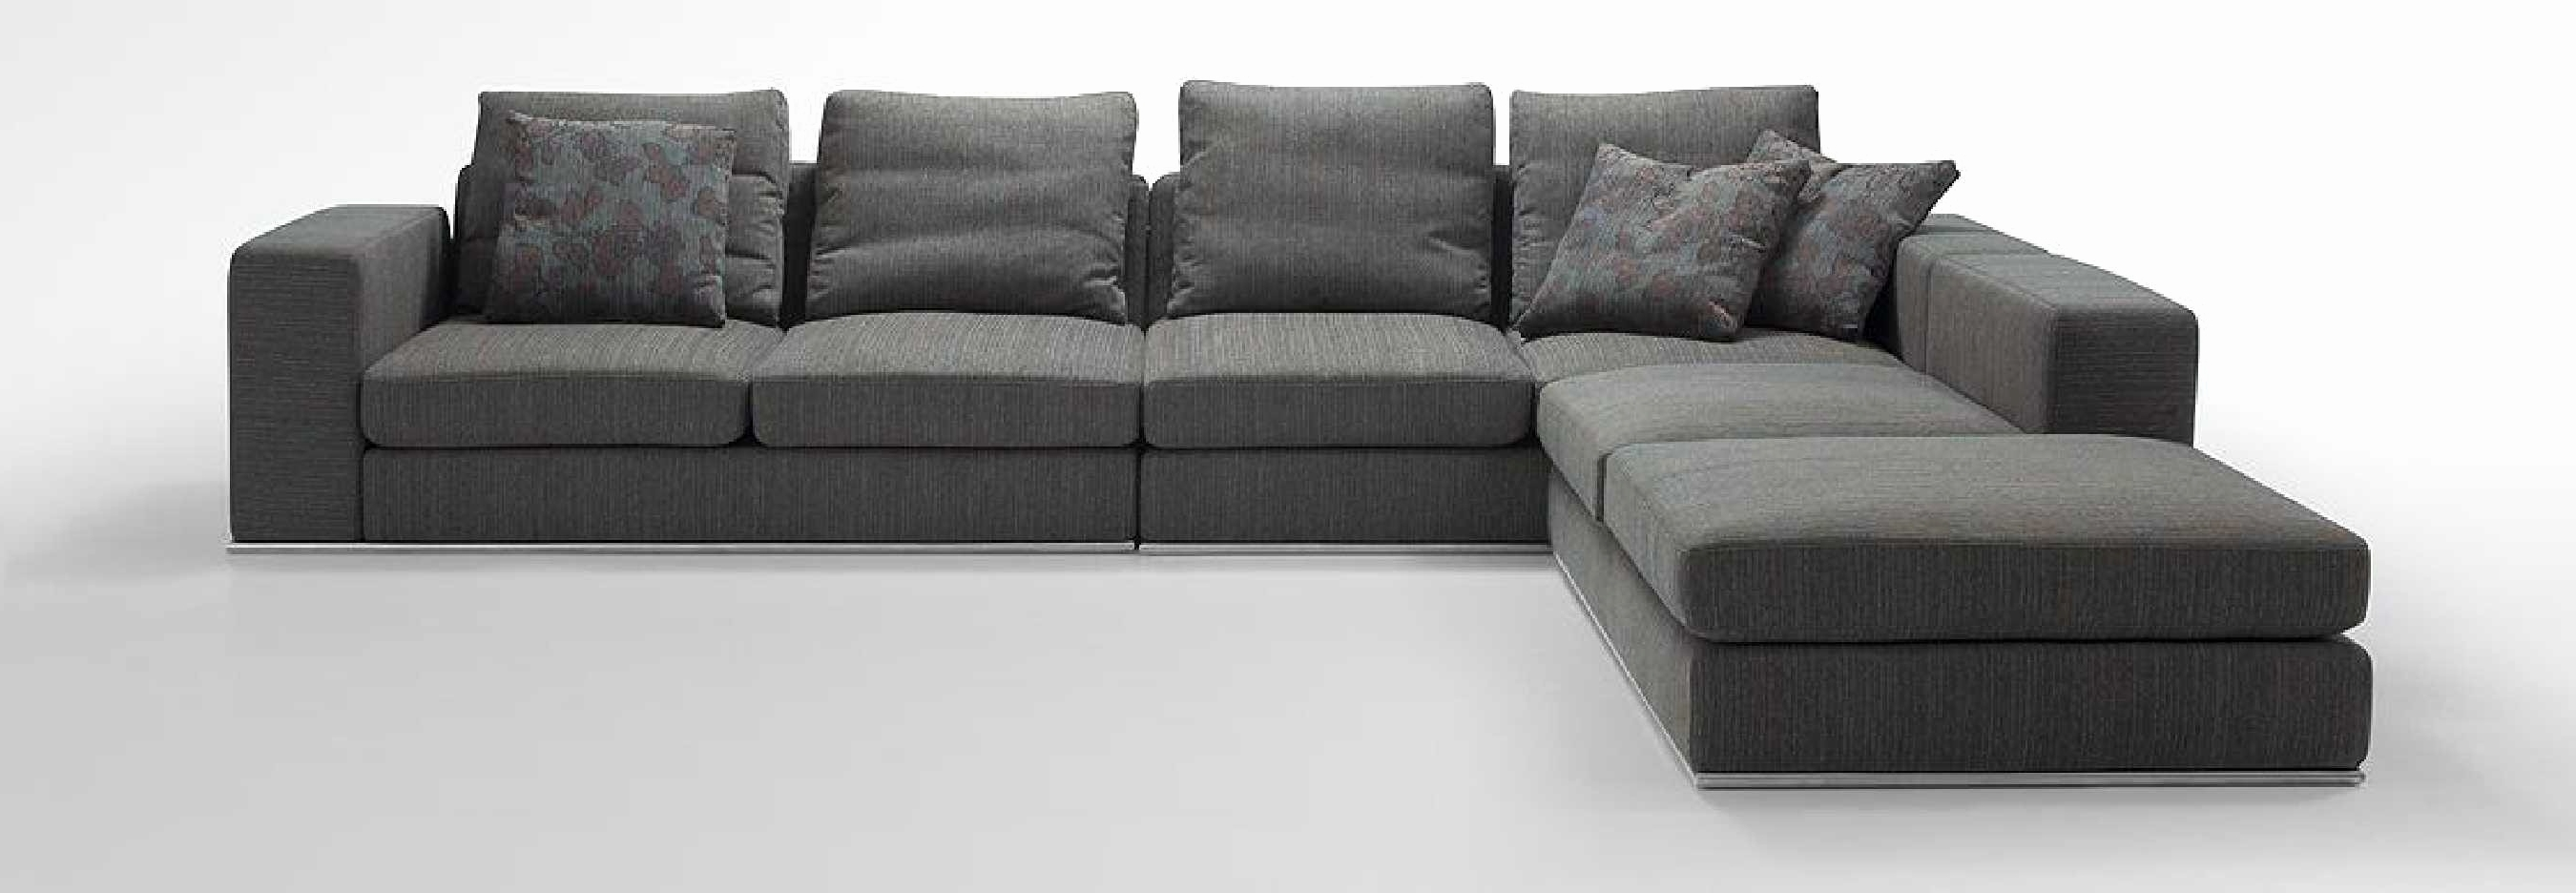 2018 L Shaped Sectional Sleeper Sofas Regarding New Grey L Shaped Sectional 2018 – Couches And Sofas Ideas (View 13 of 15)